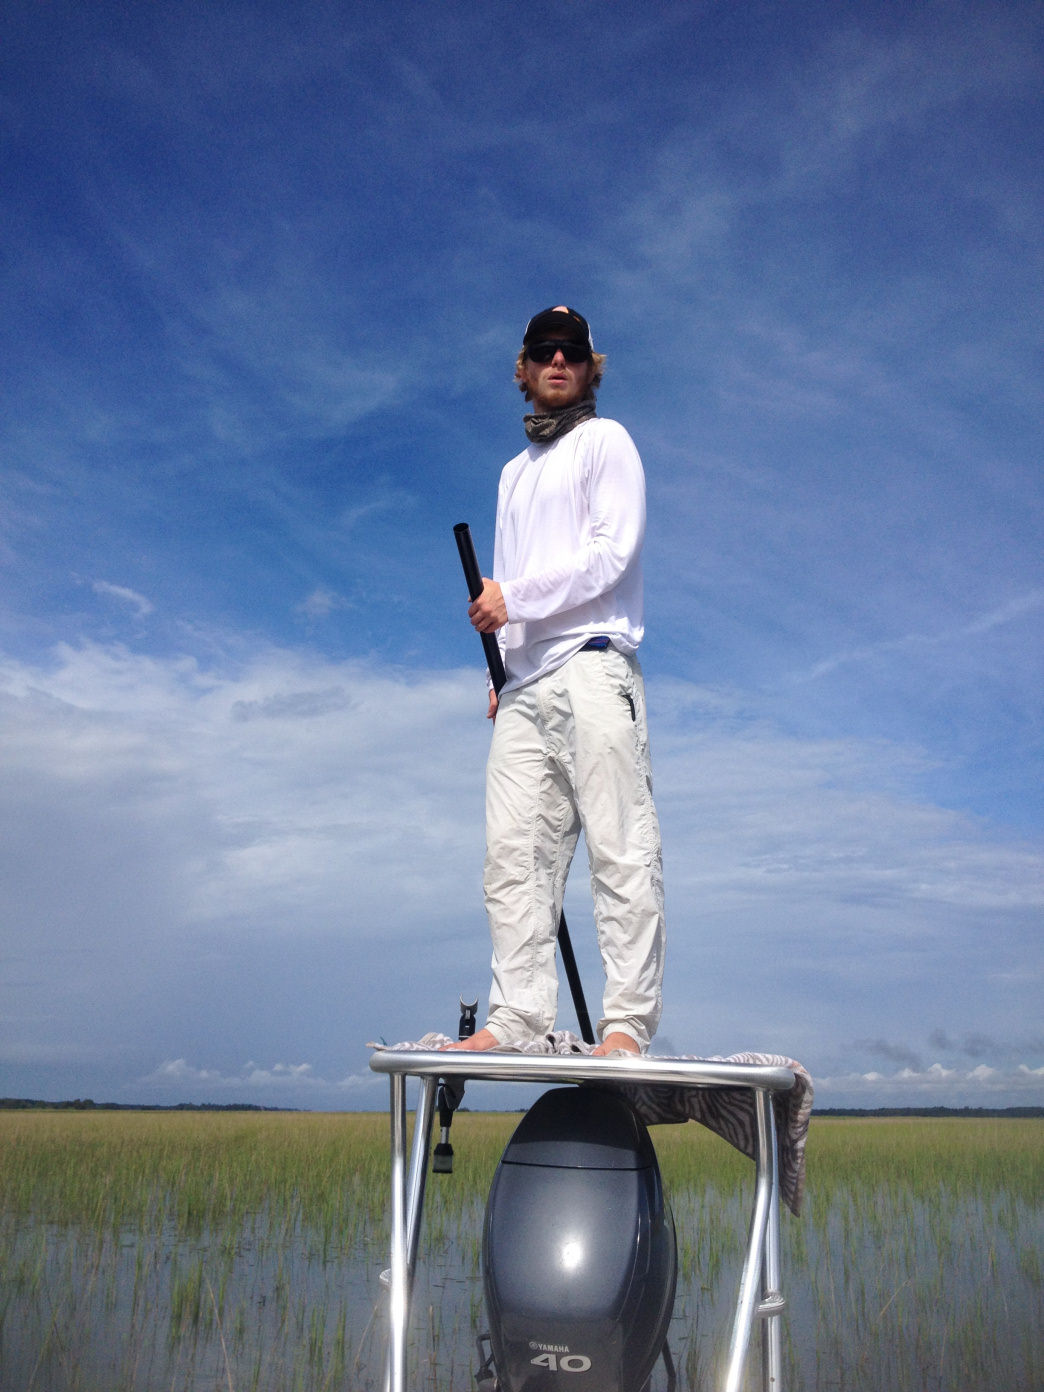 Capt. Harry Tomlinson will help you pull in the  big redfish.